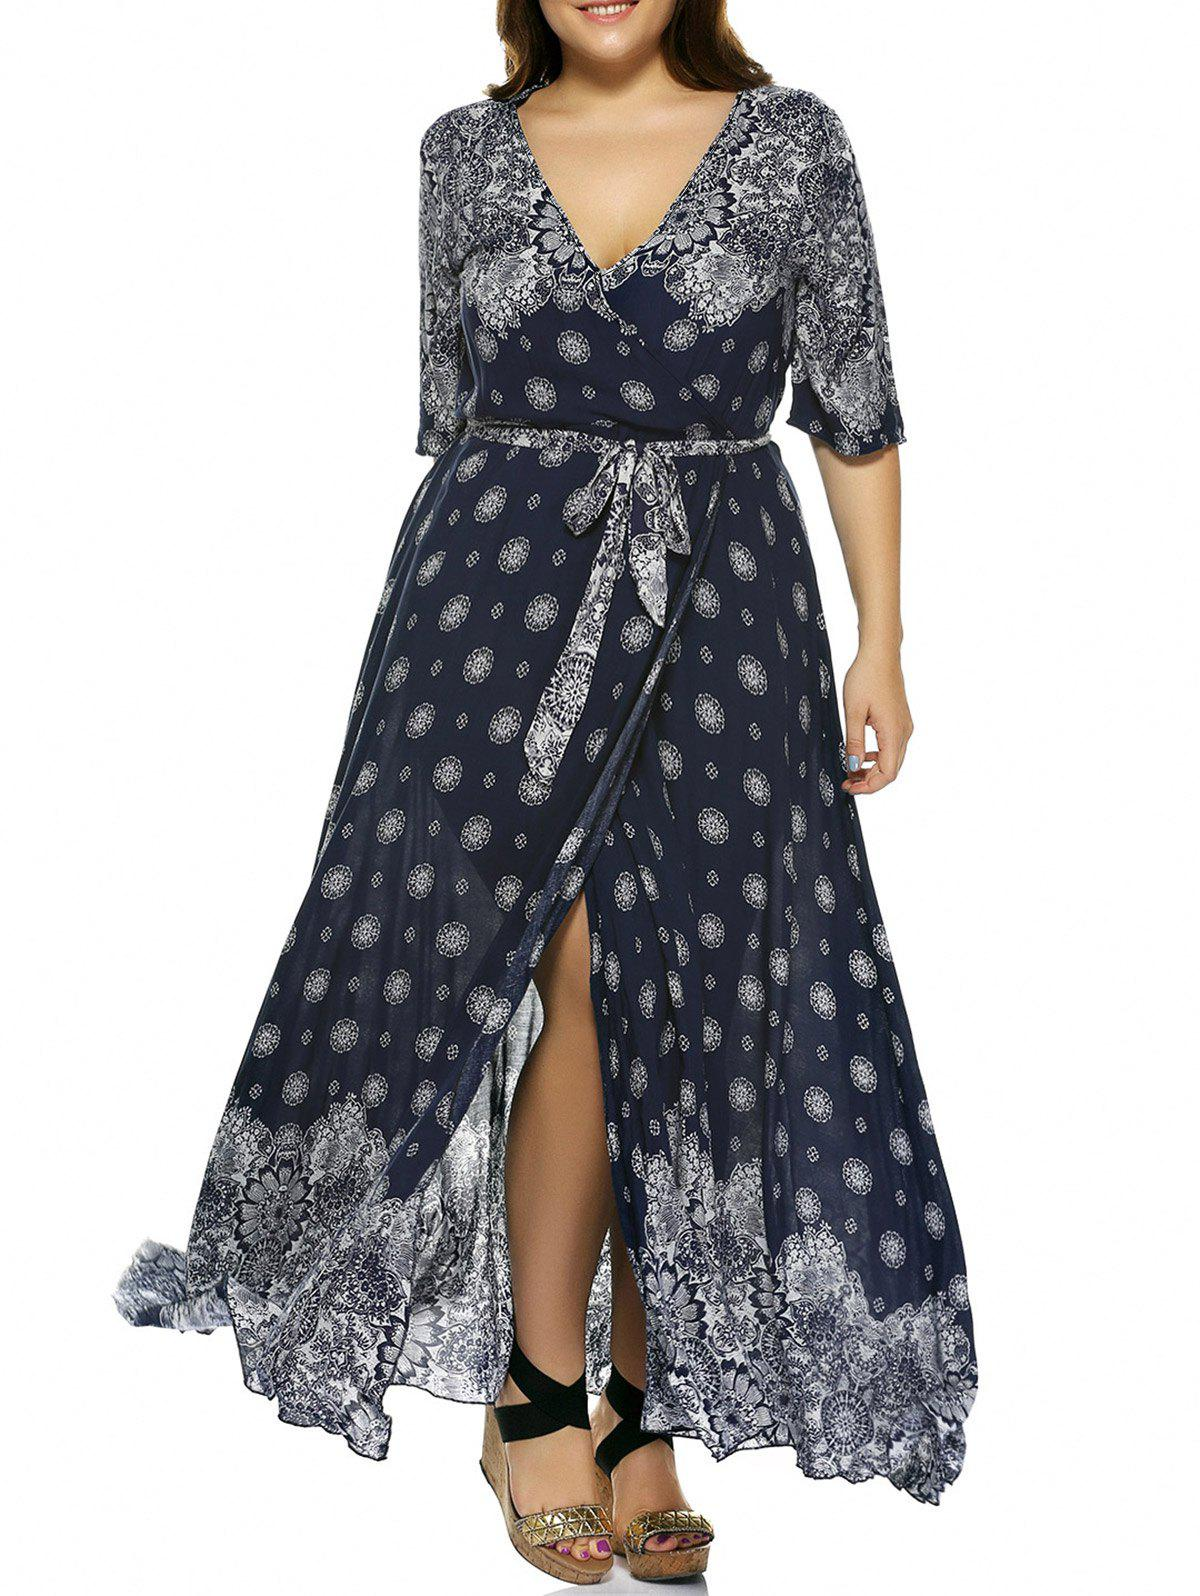 Plus Size Boho Print Flowy Beach Wrap Maxi DressWOMEN<br><br>Size: XL; Color: DEEP BLUE; Style: Bohemian; Material: Polyester; Silhouette: Beach; Dresses Length: Ankle-Length; Neckline: Plunging Neck; Sleeve Length: Short Sleeves; Waist: Empire; Pattern Type: Print; With Belt: Yes; Season: Spring,Summer; Weight: 0.3290kg; Package Contents: 1 x Dress  1 x Belt;